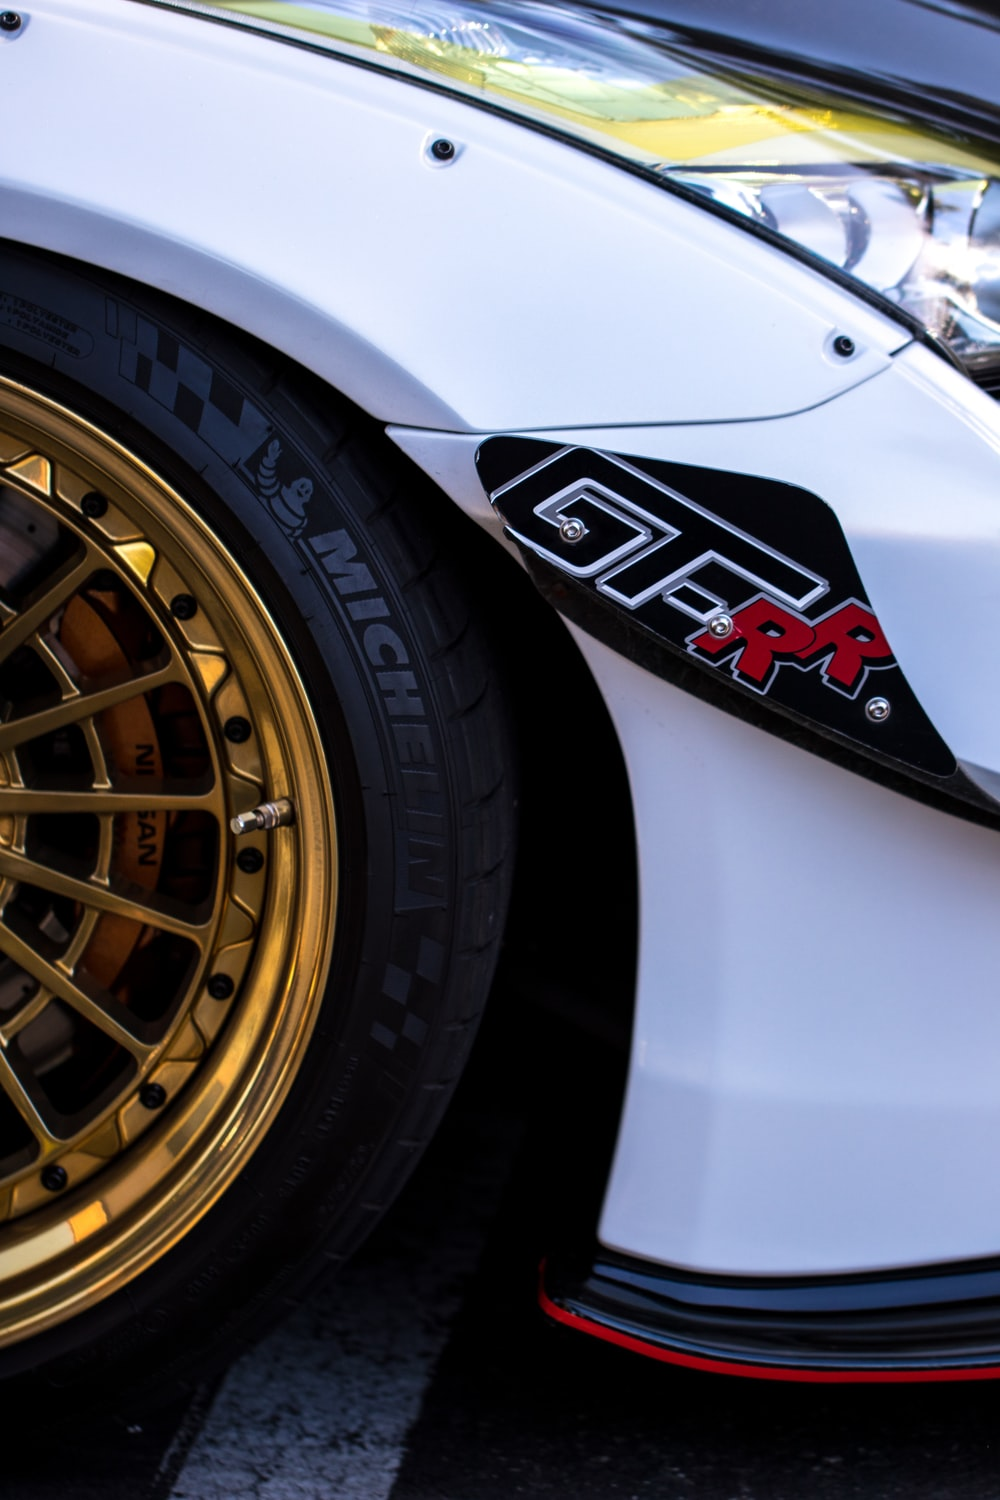 white car with gold-colored wheels and tires